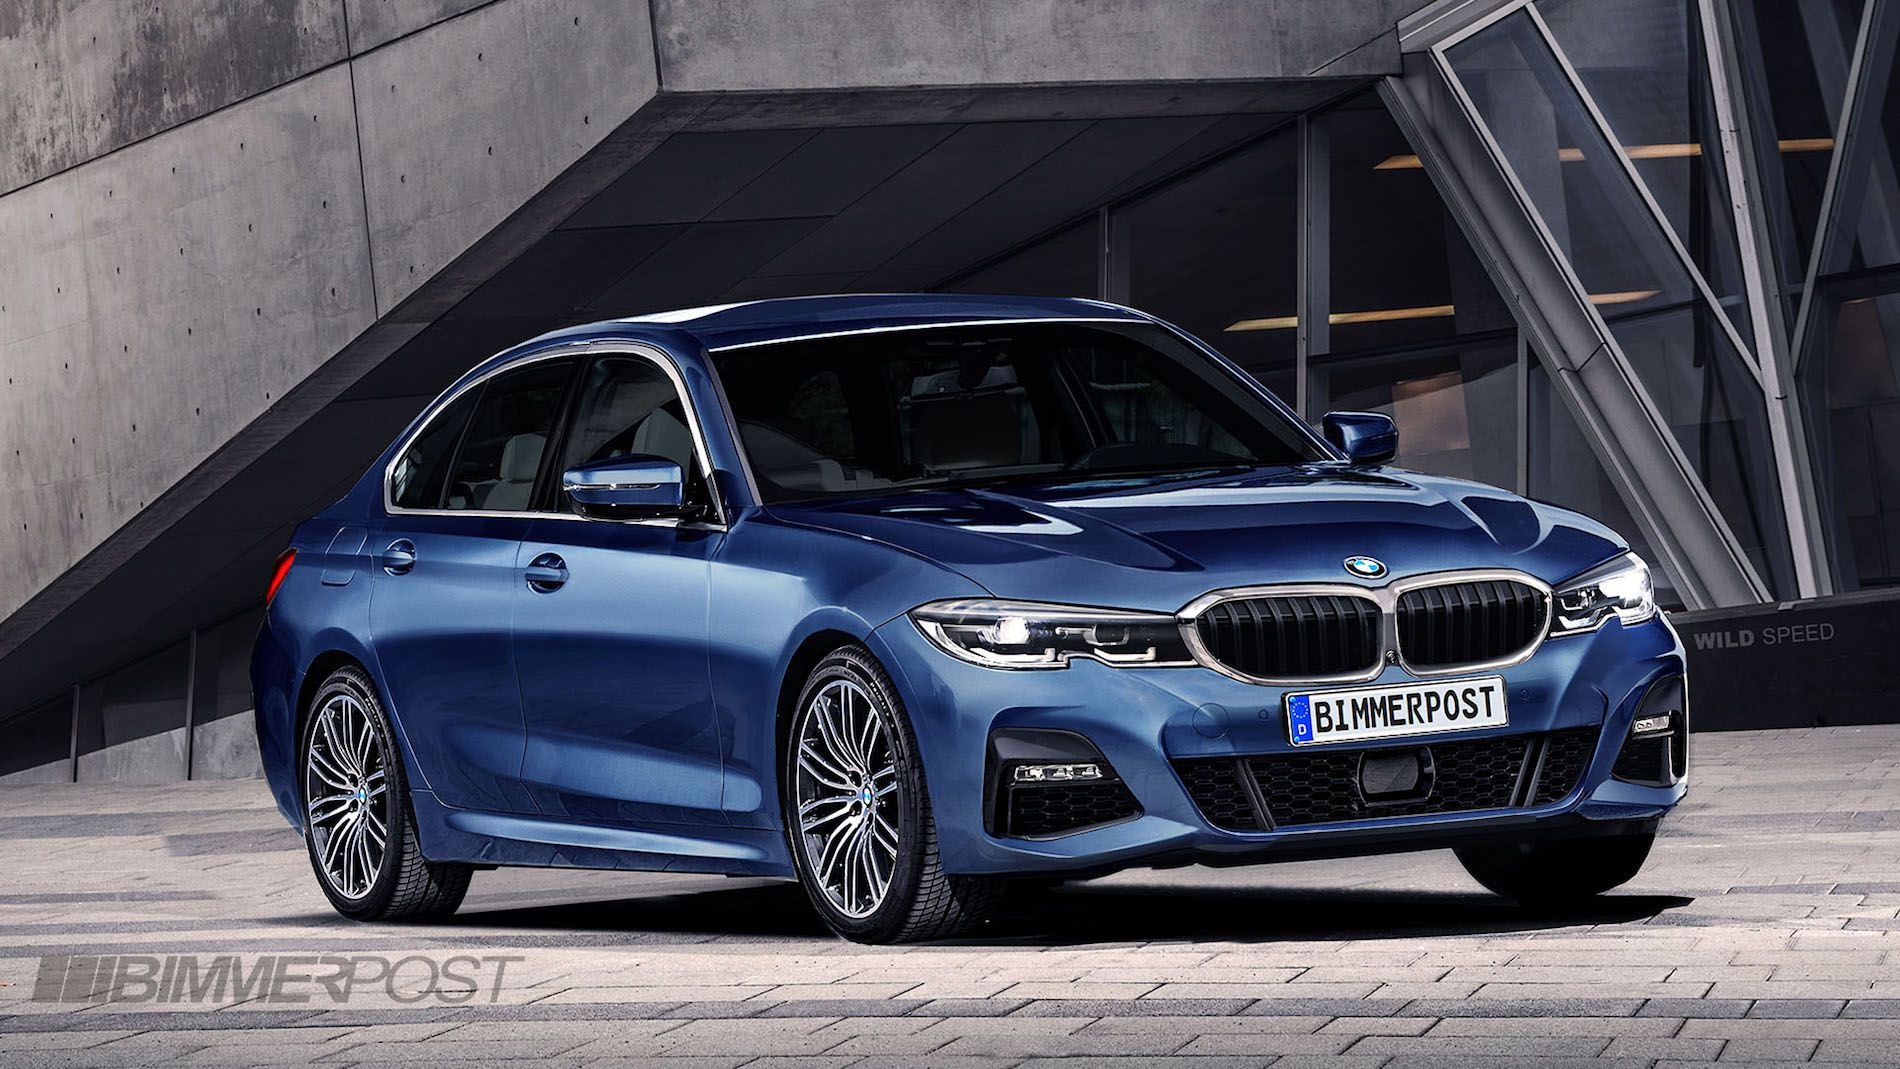 99 All New Spy Shots Bmw 3 Series Wallpaper